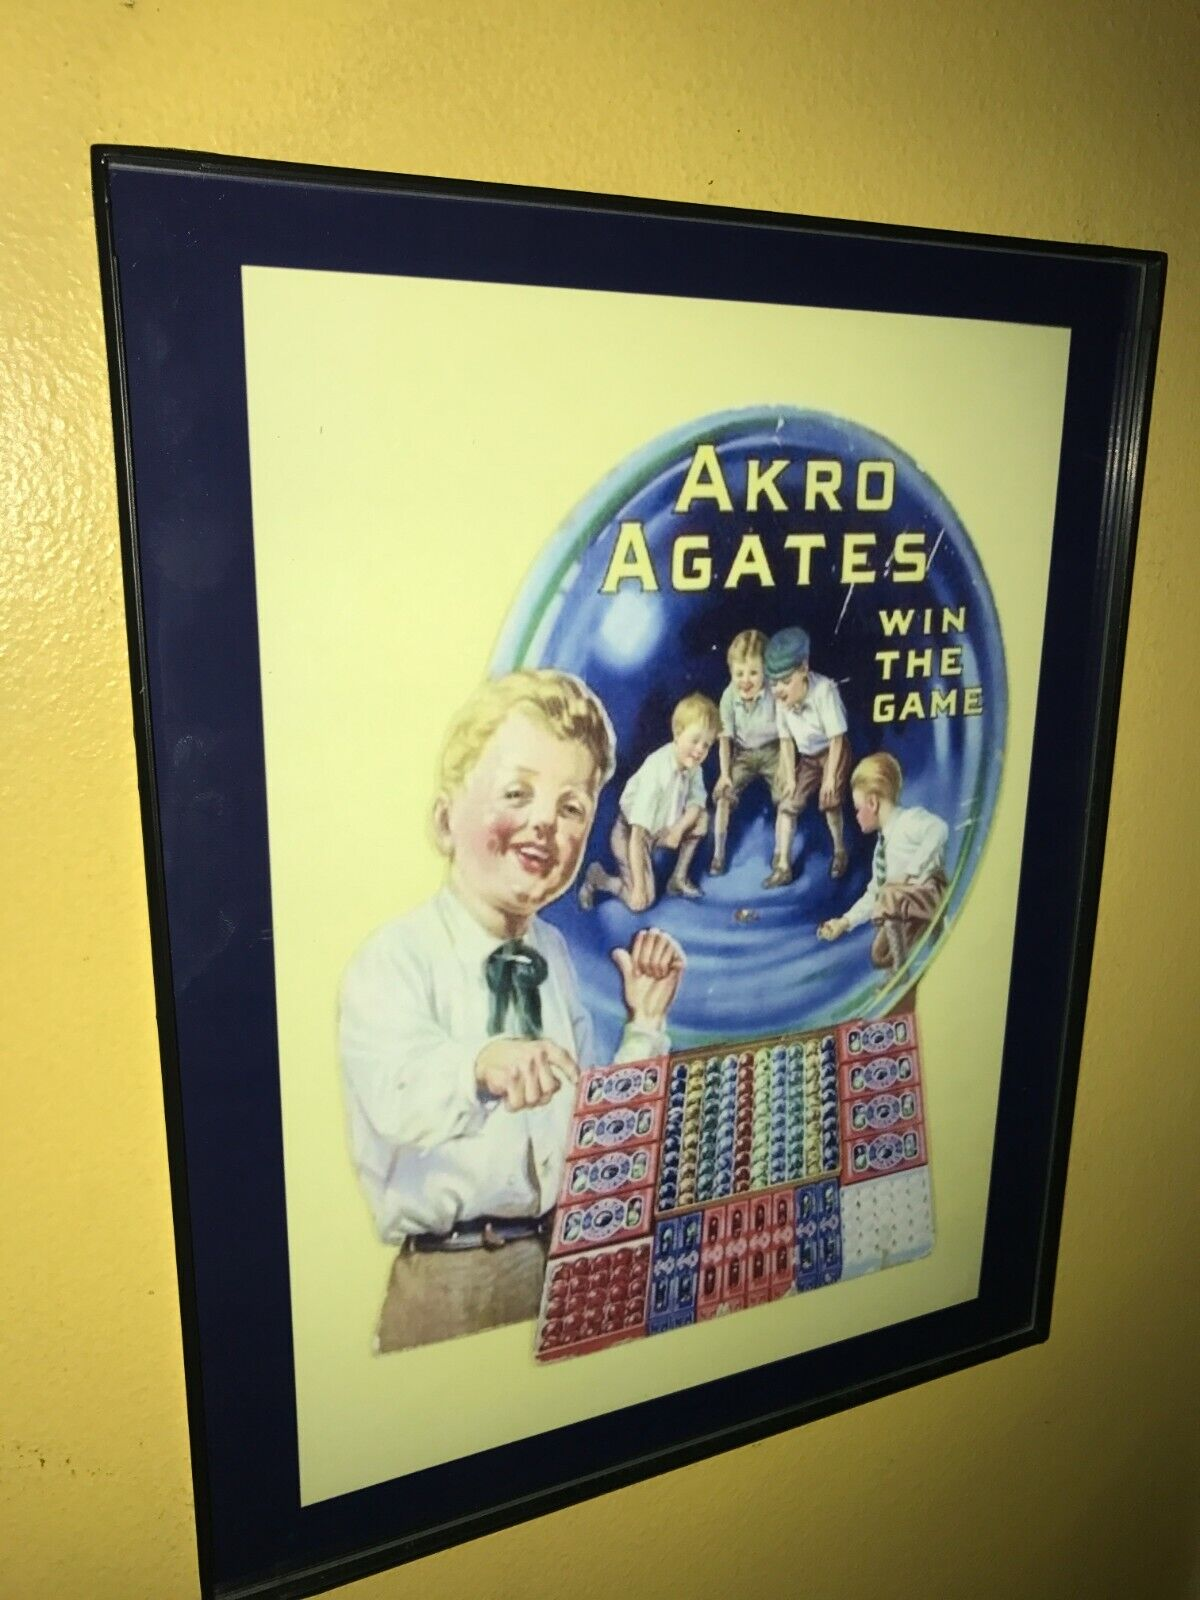 Akro Agates Marbles Toy Store Advertising Sign - $24.99